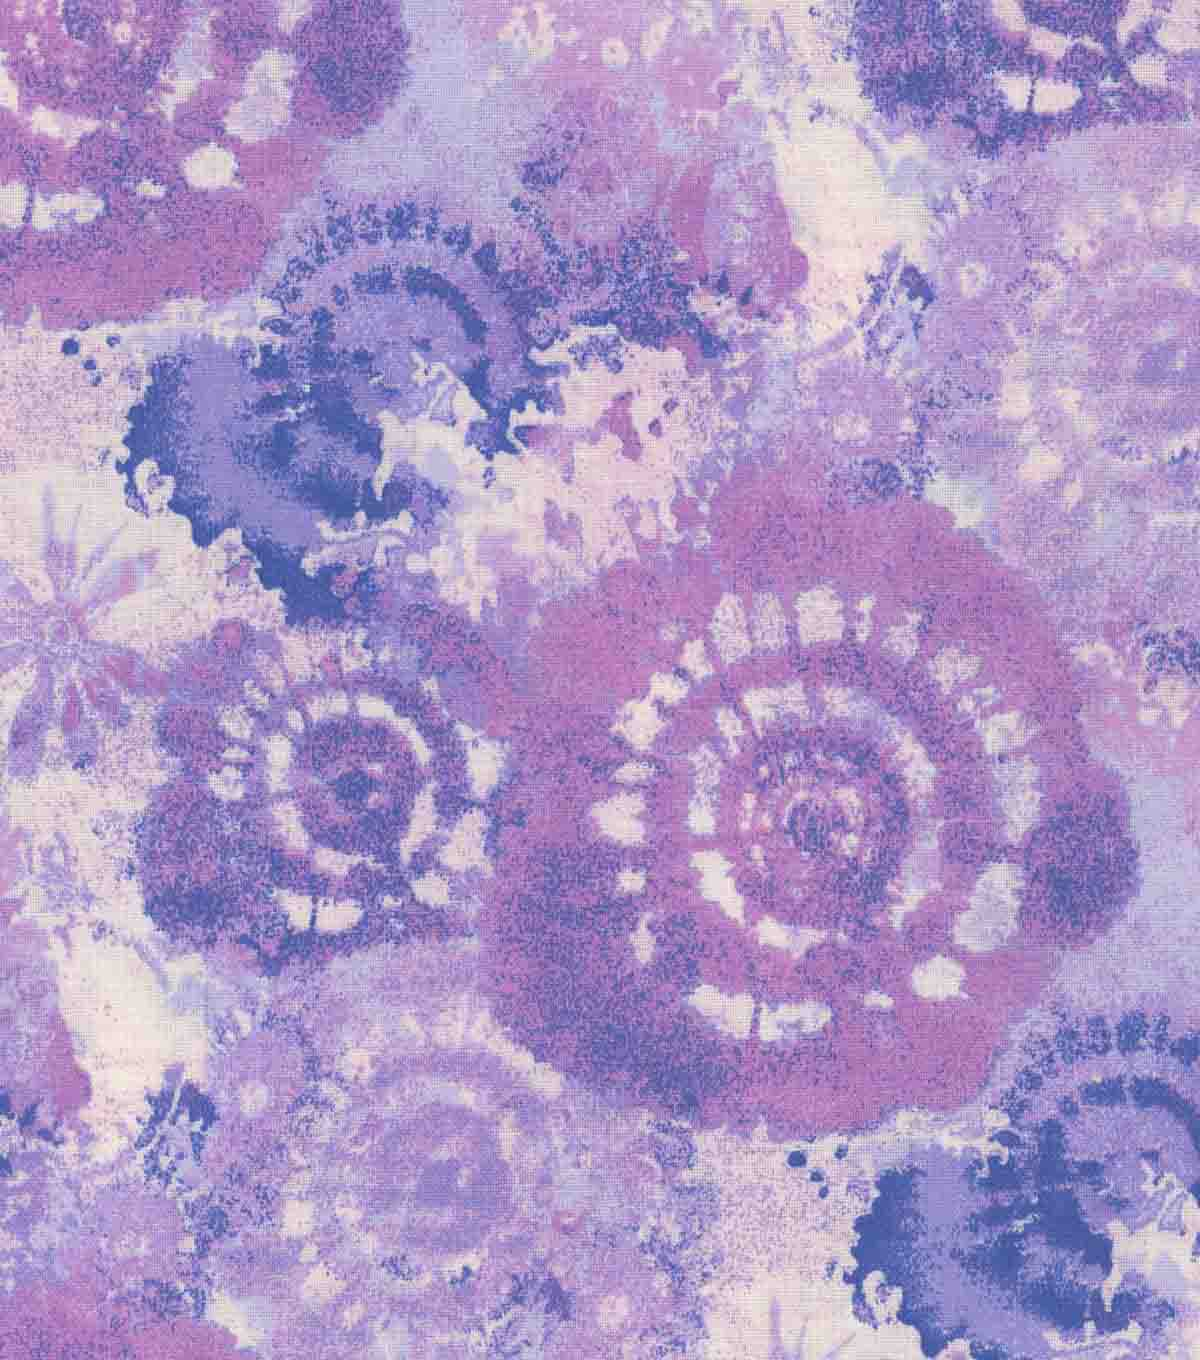 Keepsake Calico Cotton Fabric 44\u0027\u0027-Periwinkle Tie Dye